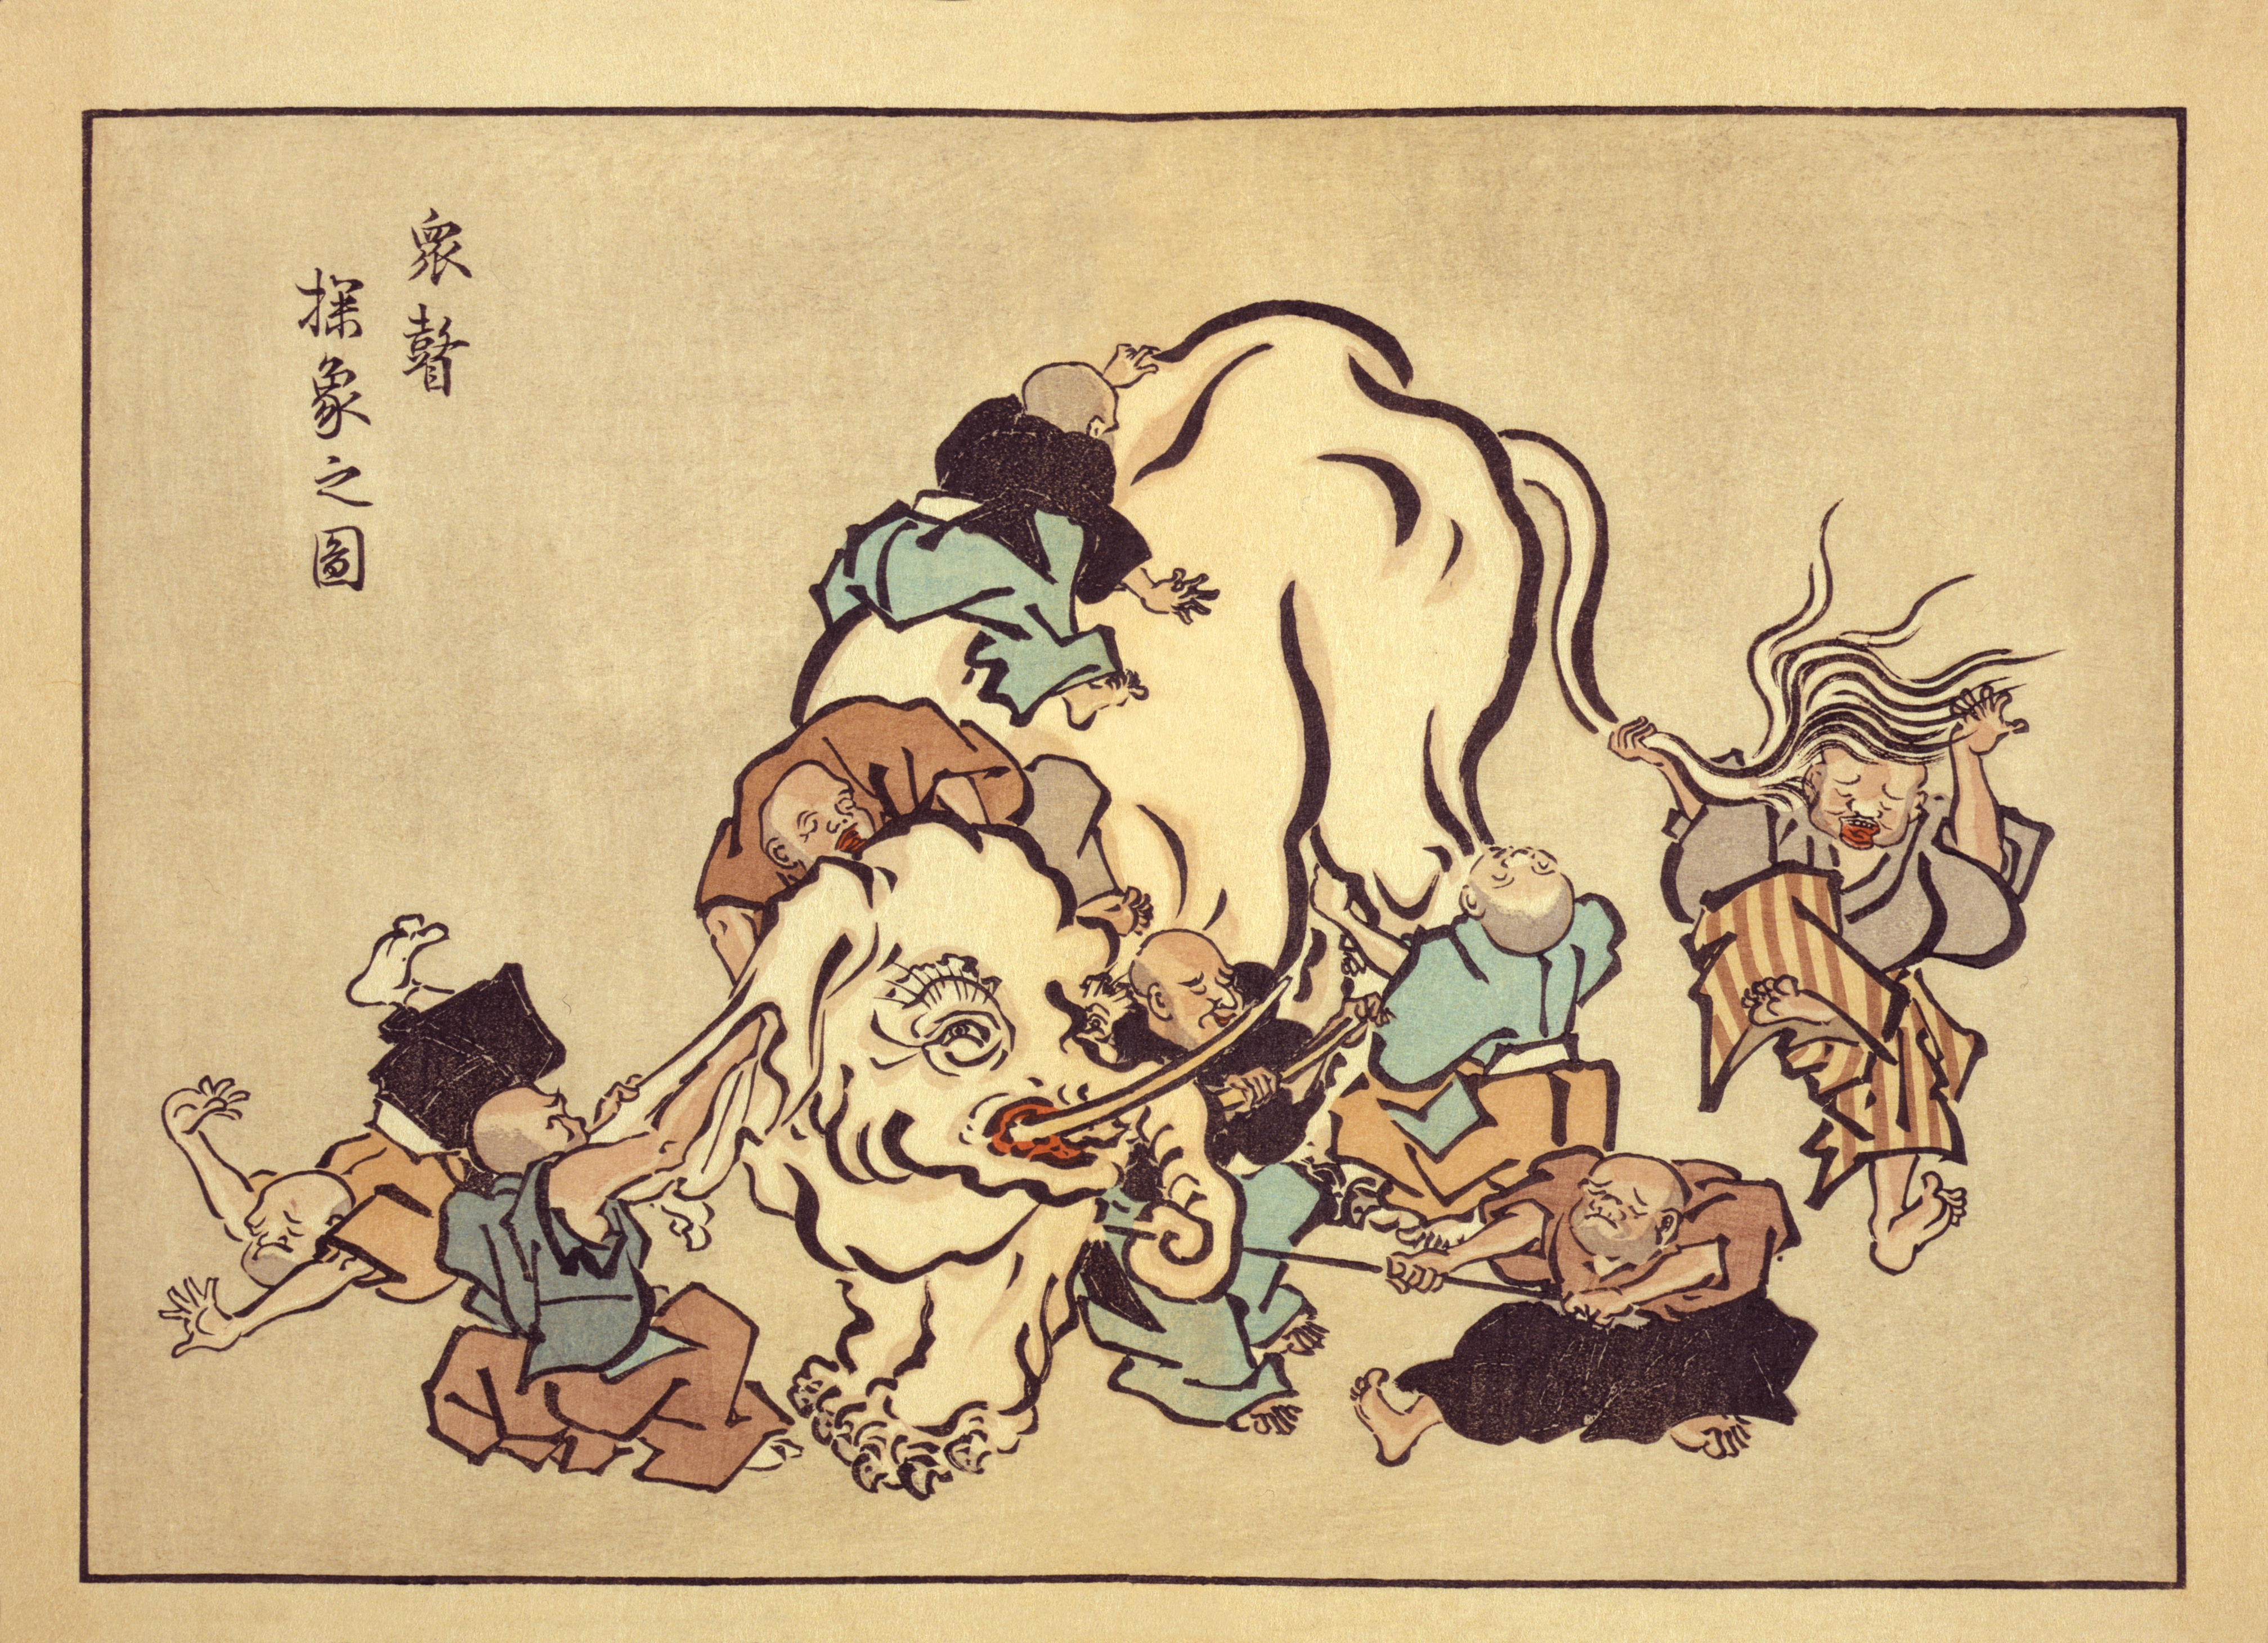 """Blind monks examining an elephant"", an ukiyo-e print by Hanabusa Itchō"